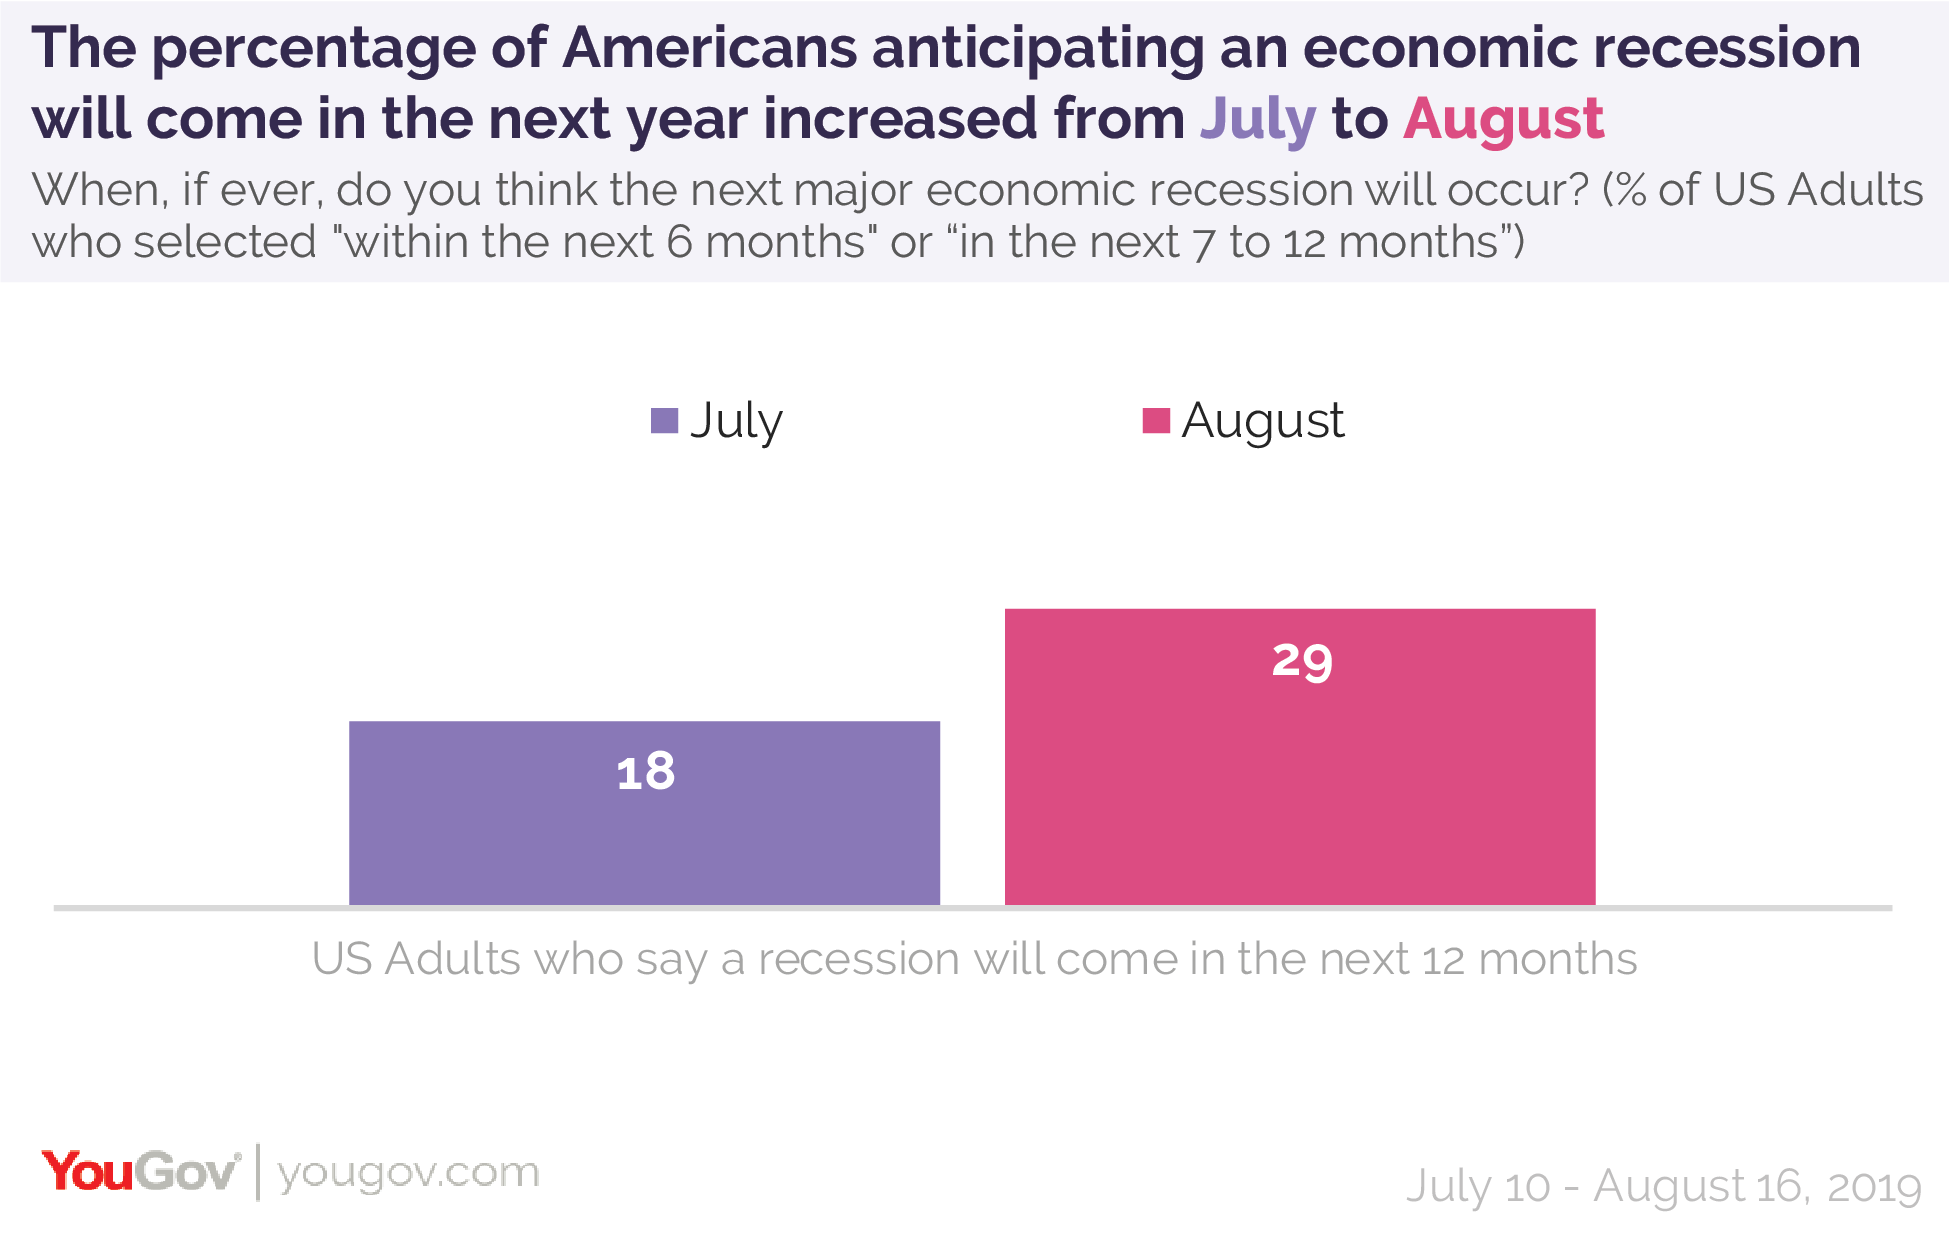 The percentage of Americans anticipating an economic recession will come in the next year increased from July to August